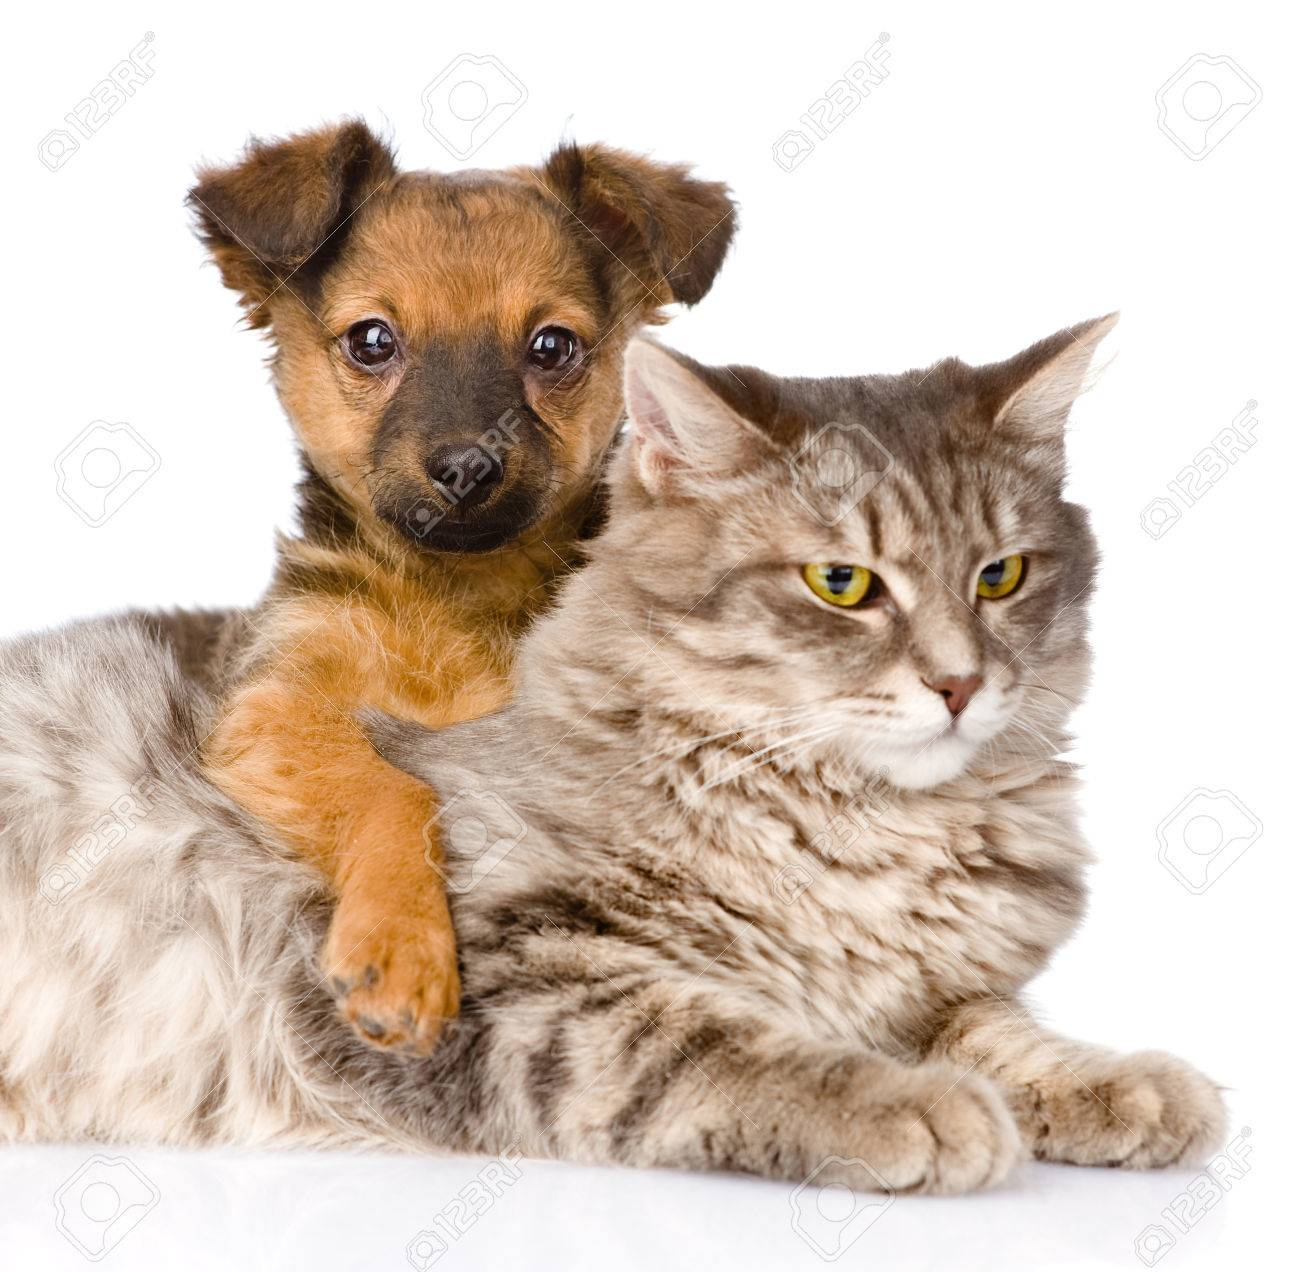 Cat Dog Breed Mix Mixed Breed Dog Hugging Cat